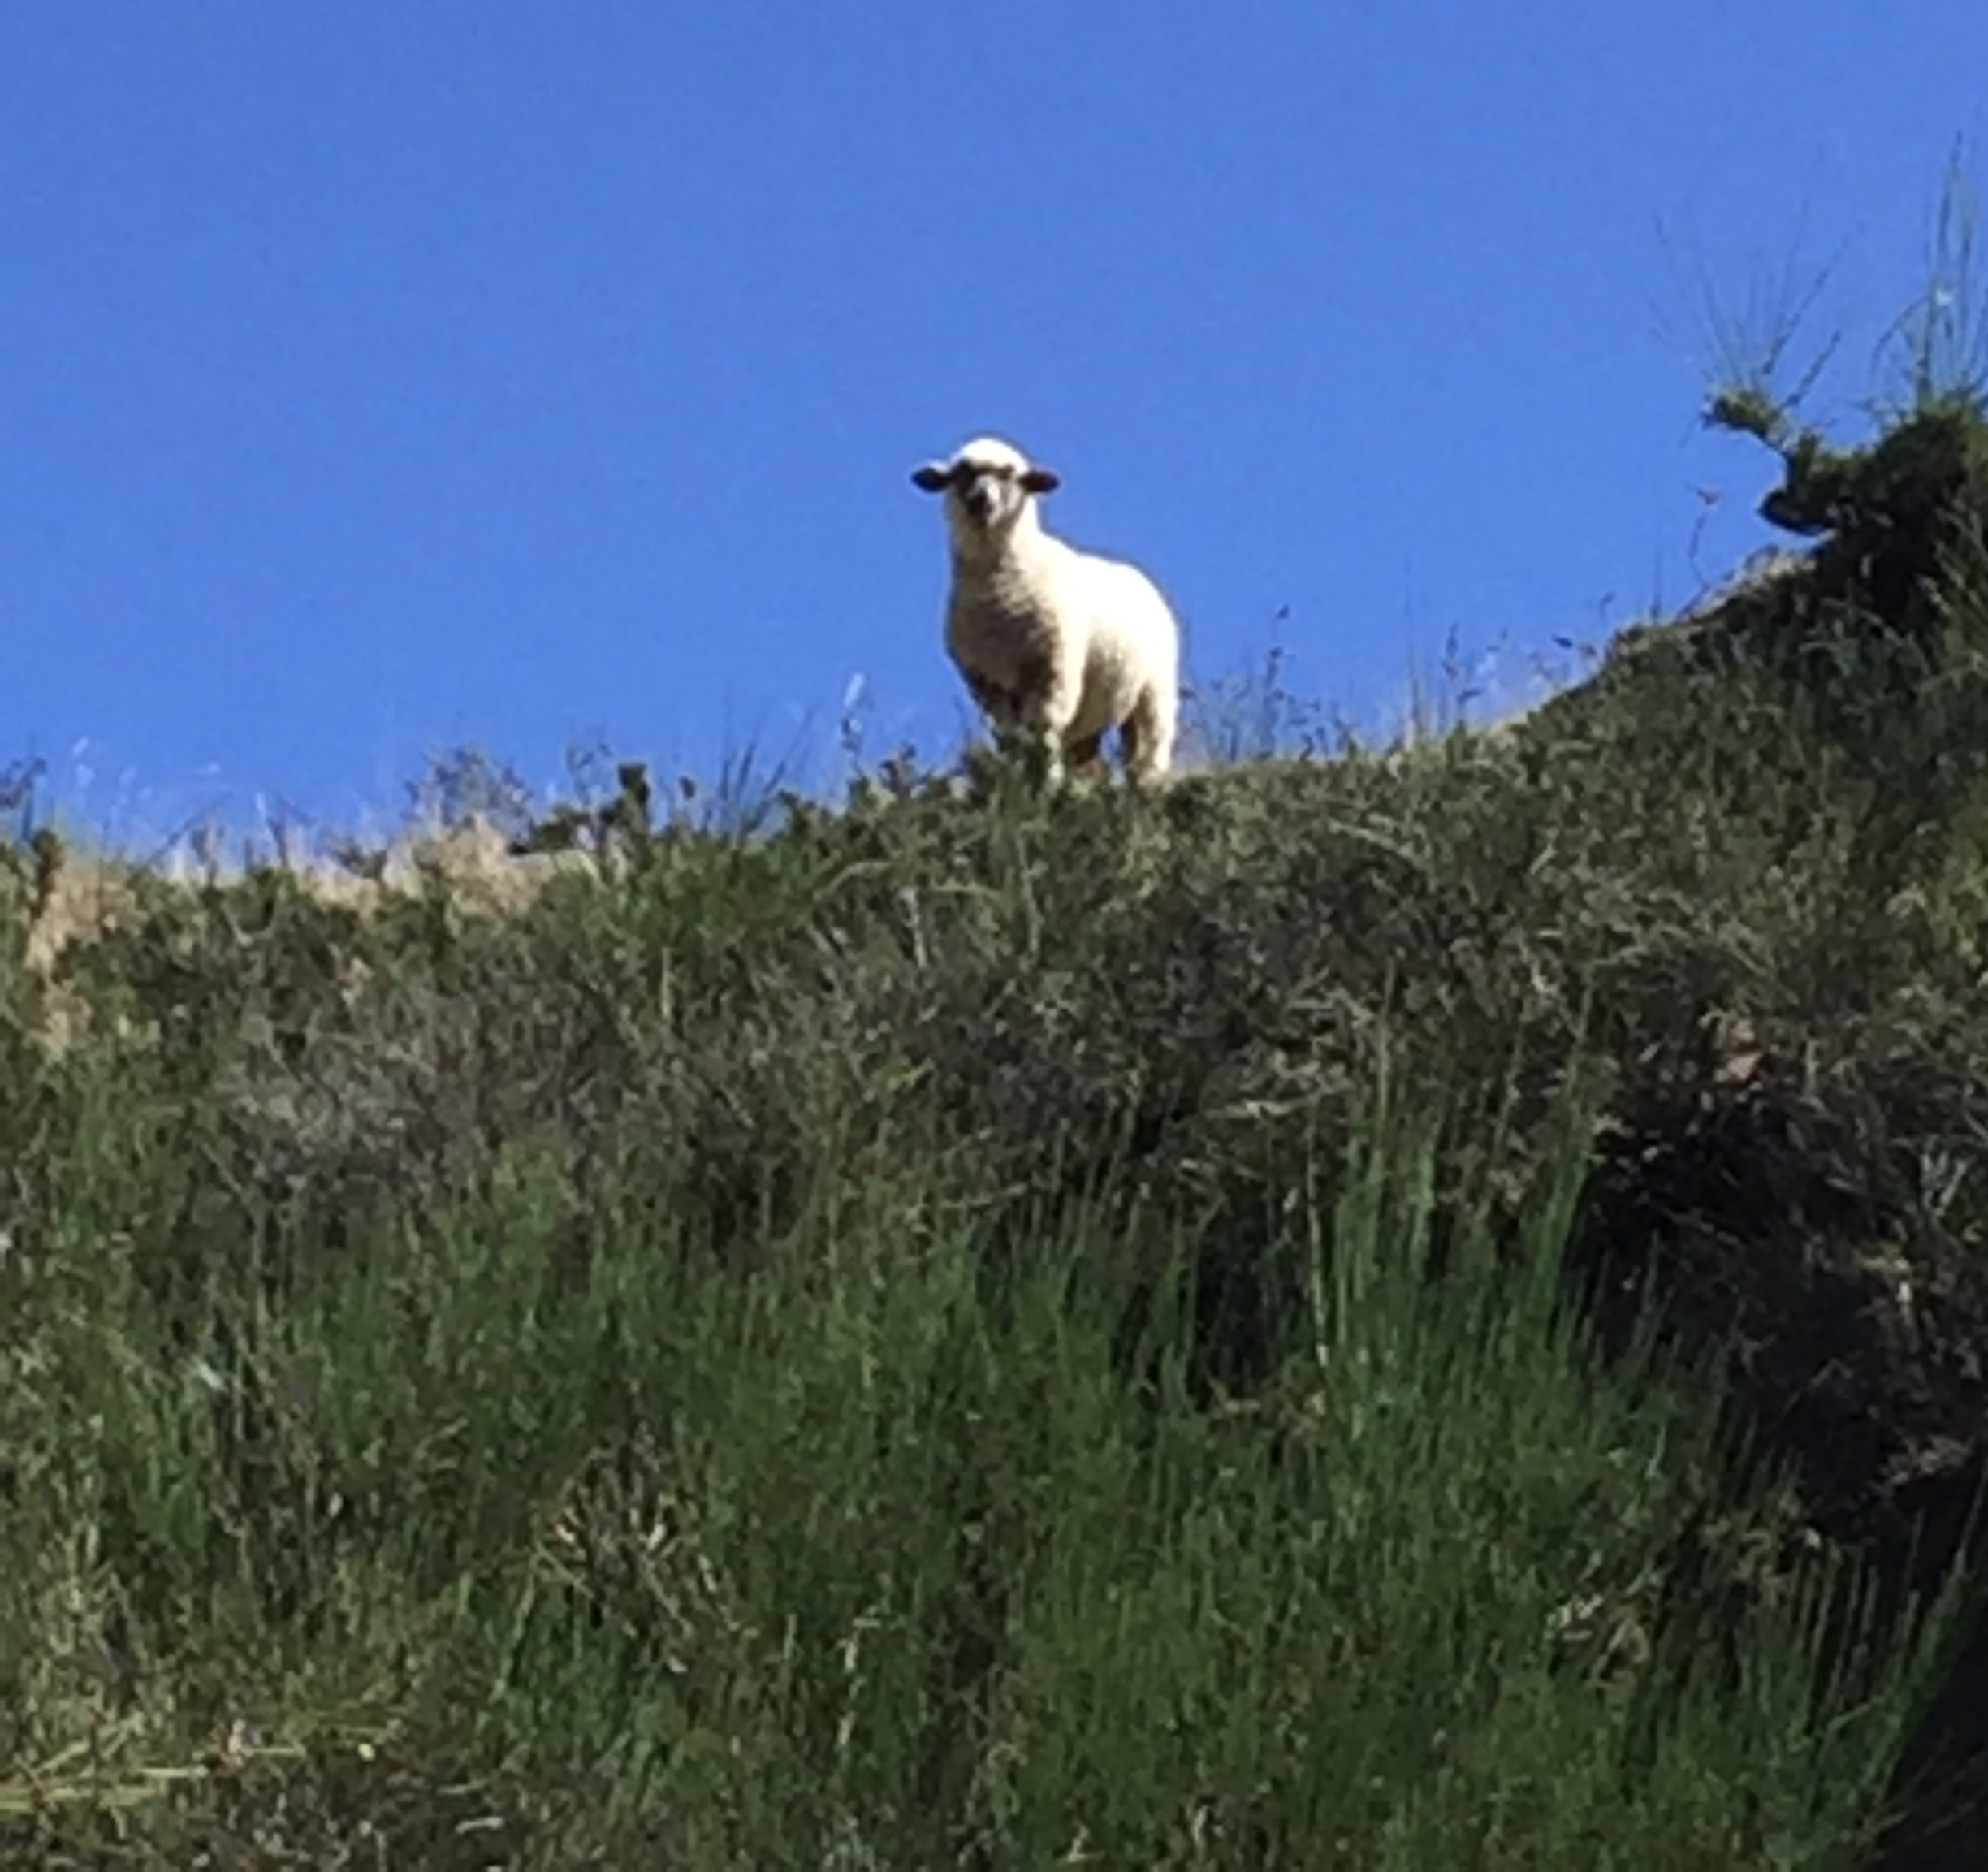 The sheep were watching us